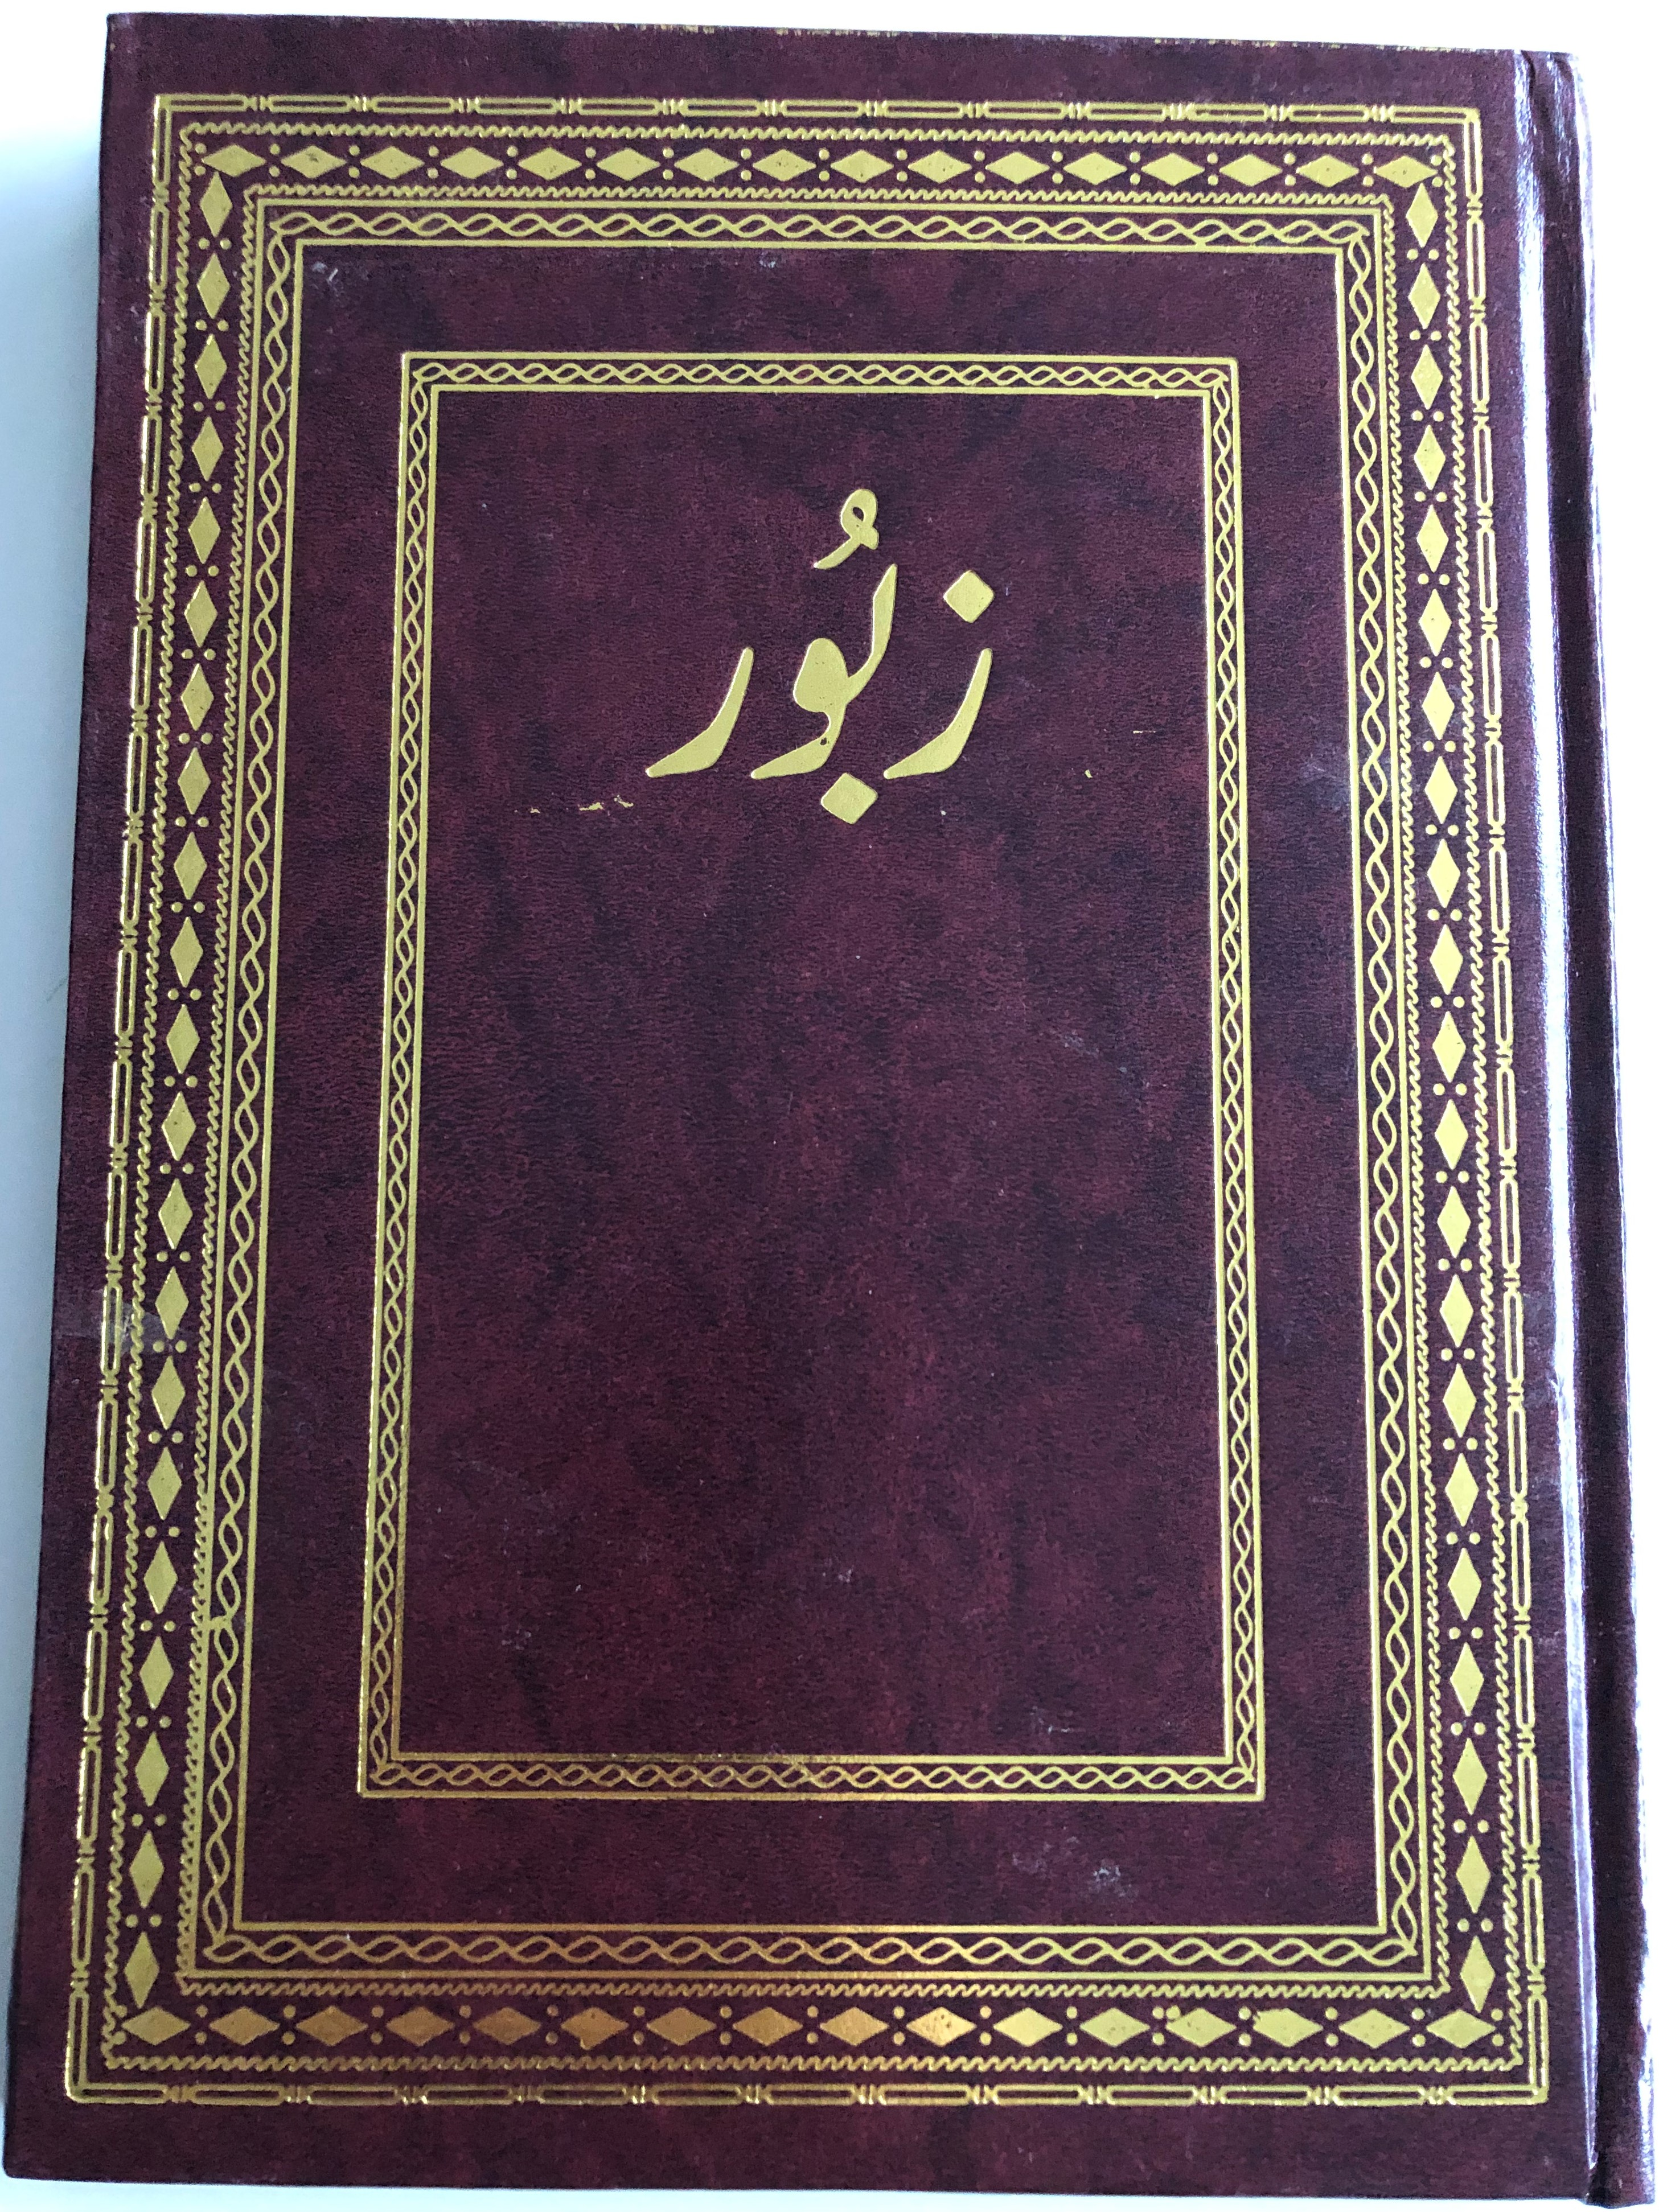 book-of-psalms-from-the-old-testament-in-urdu-language-large-print-1-.jpg